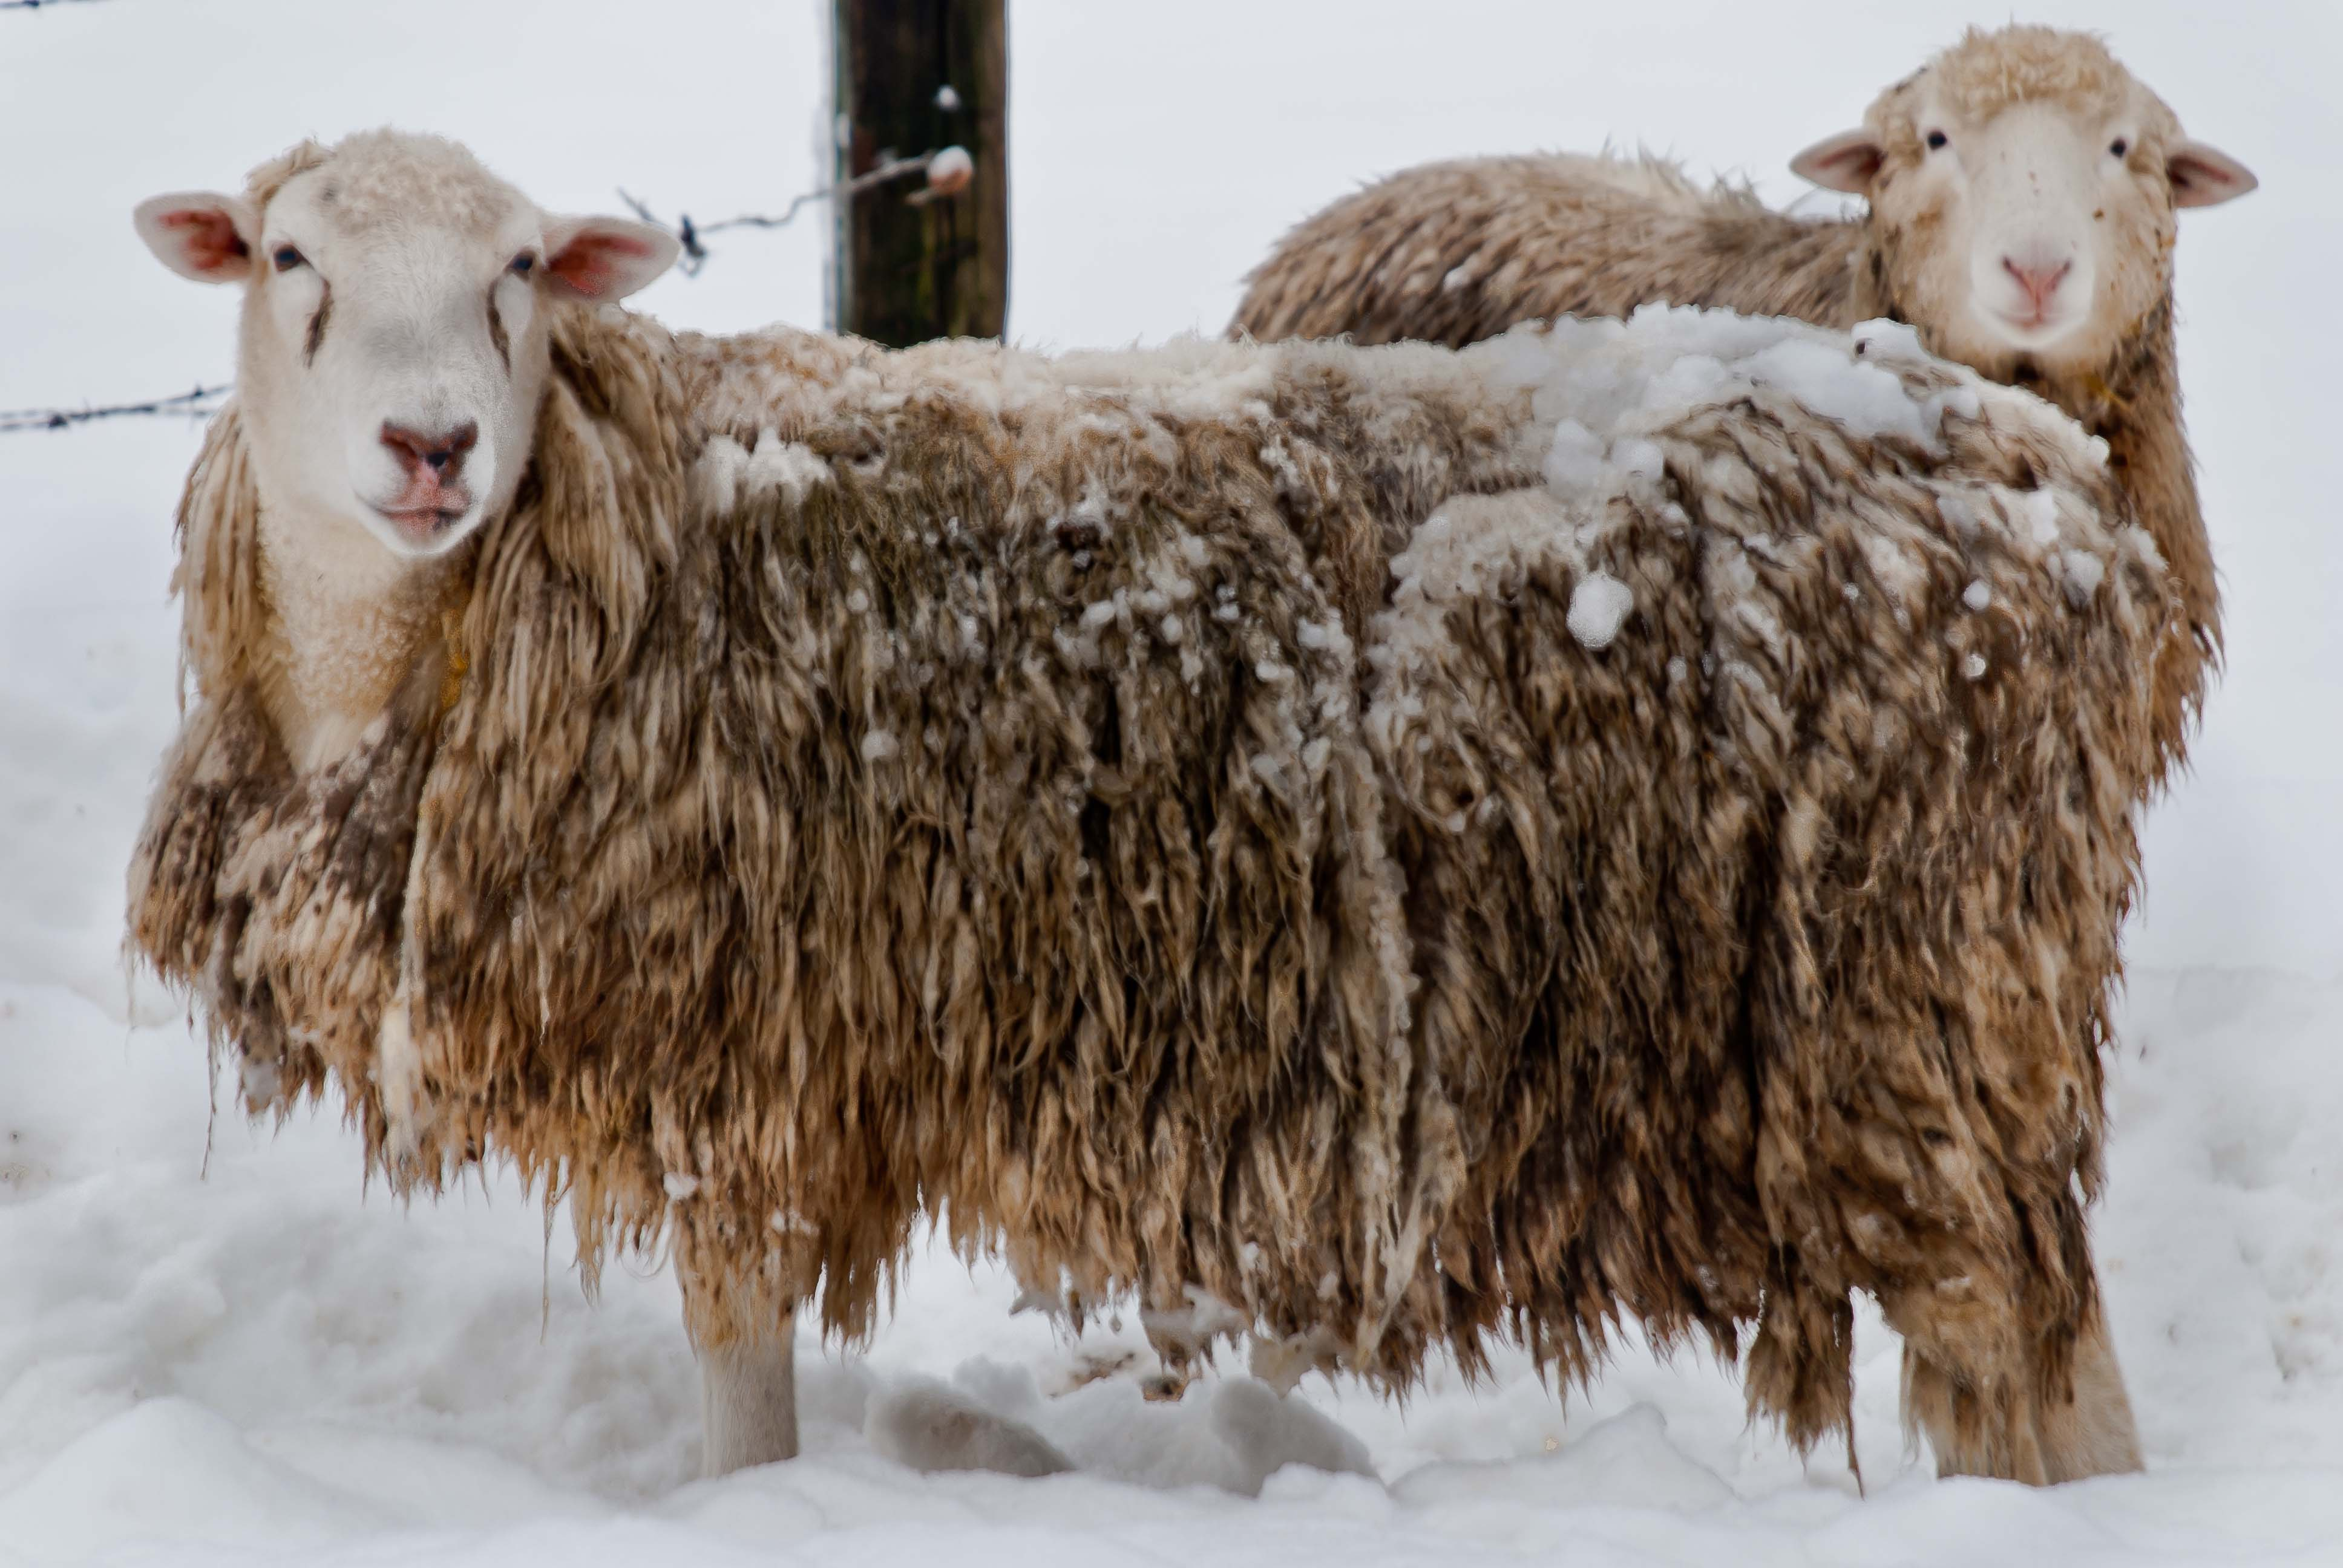 Sheep_in-winter_0560